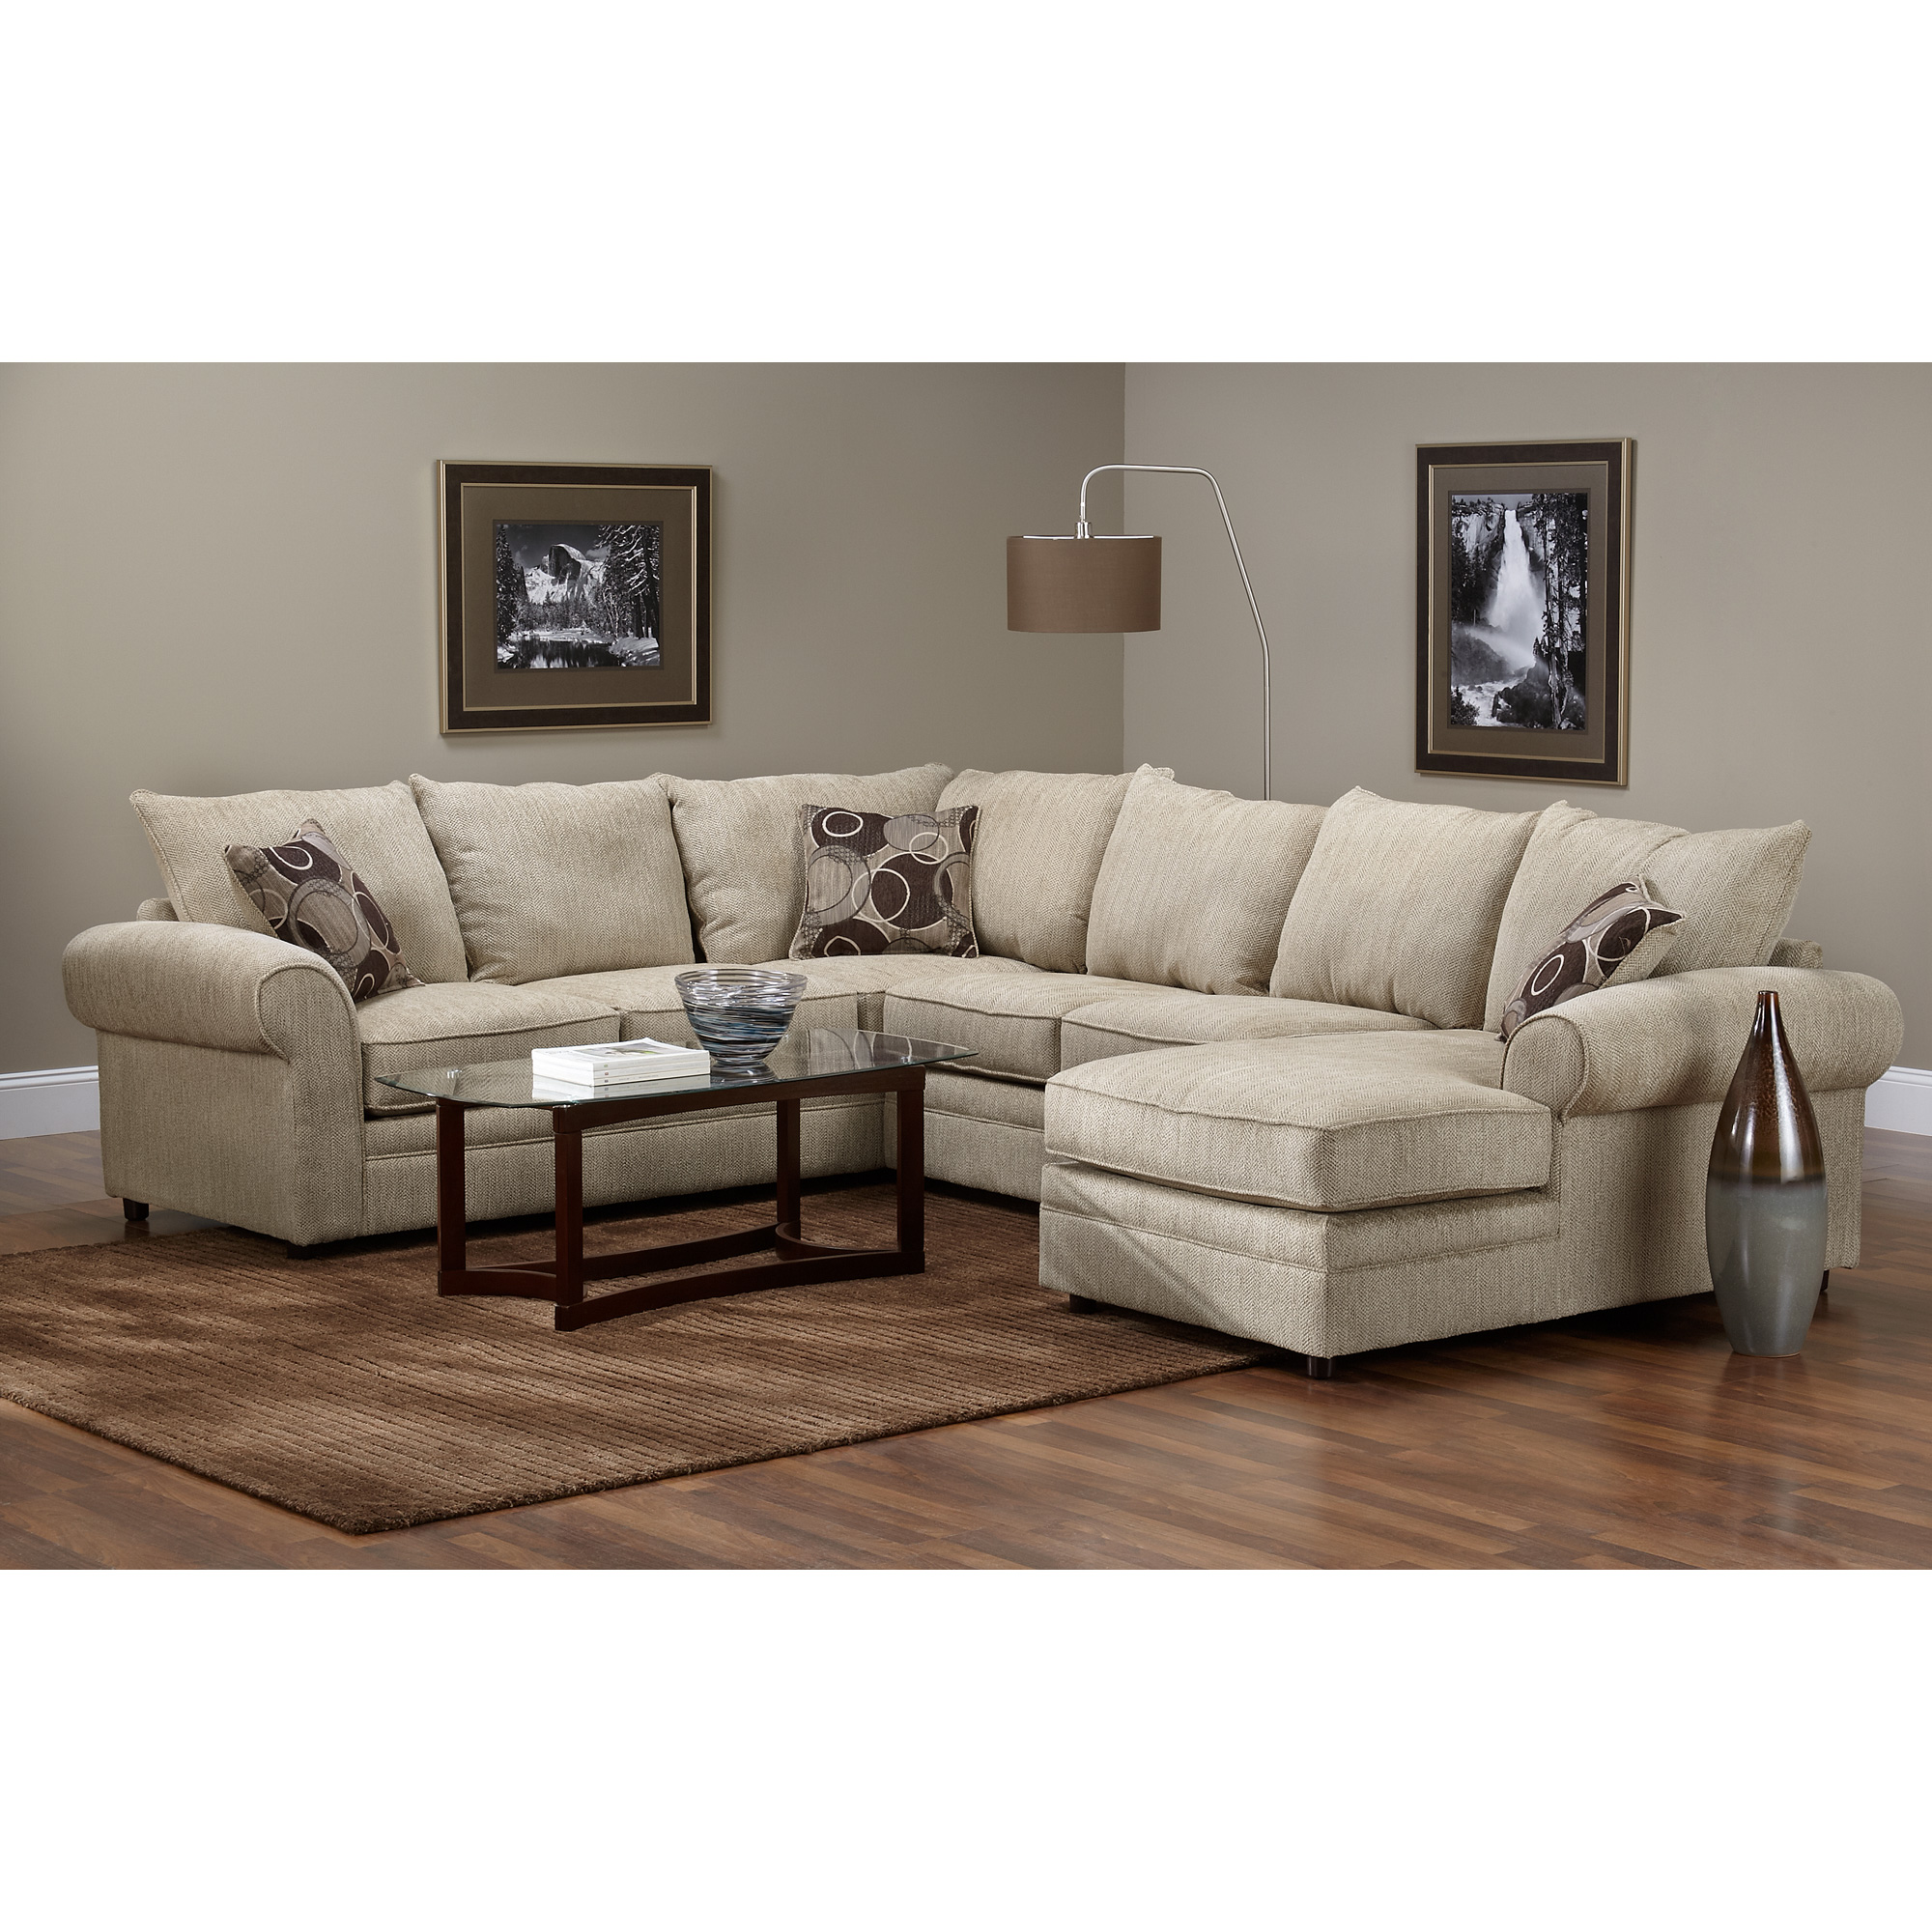 Serta Upholstery By Hughes Furniture | Bridgetown 3 Piece Tan Sectional Sofa